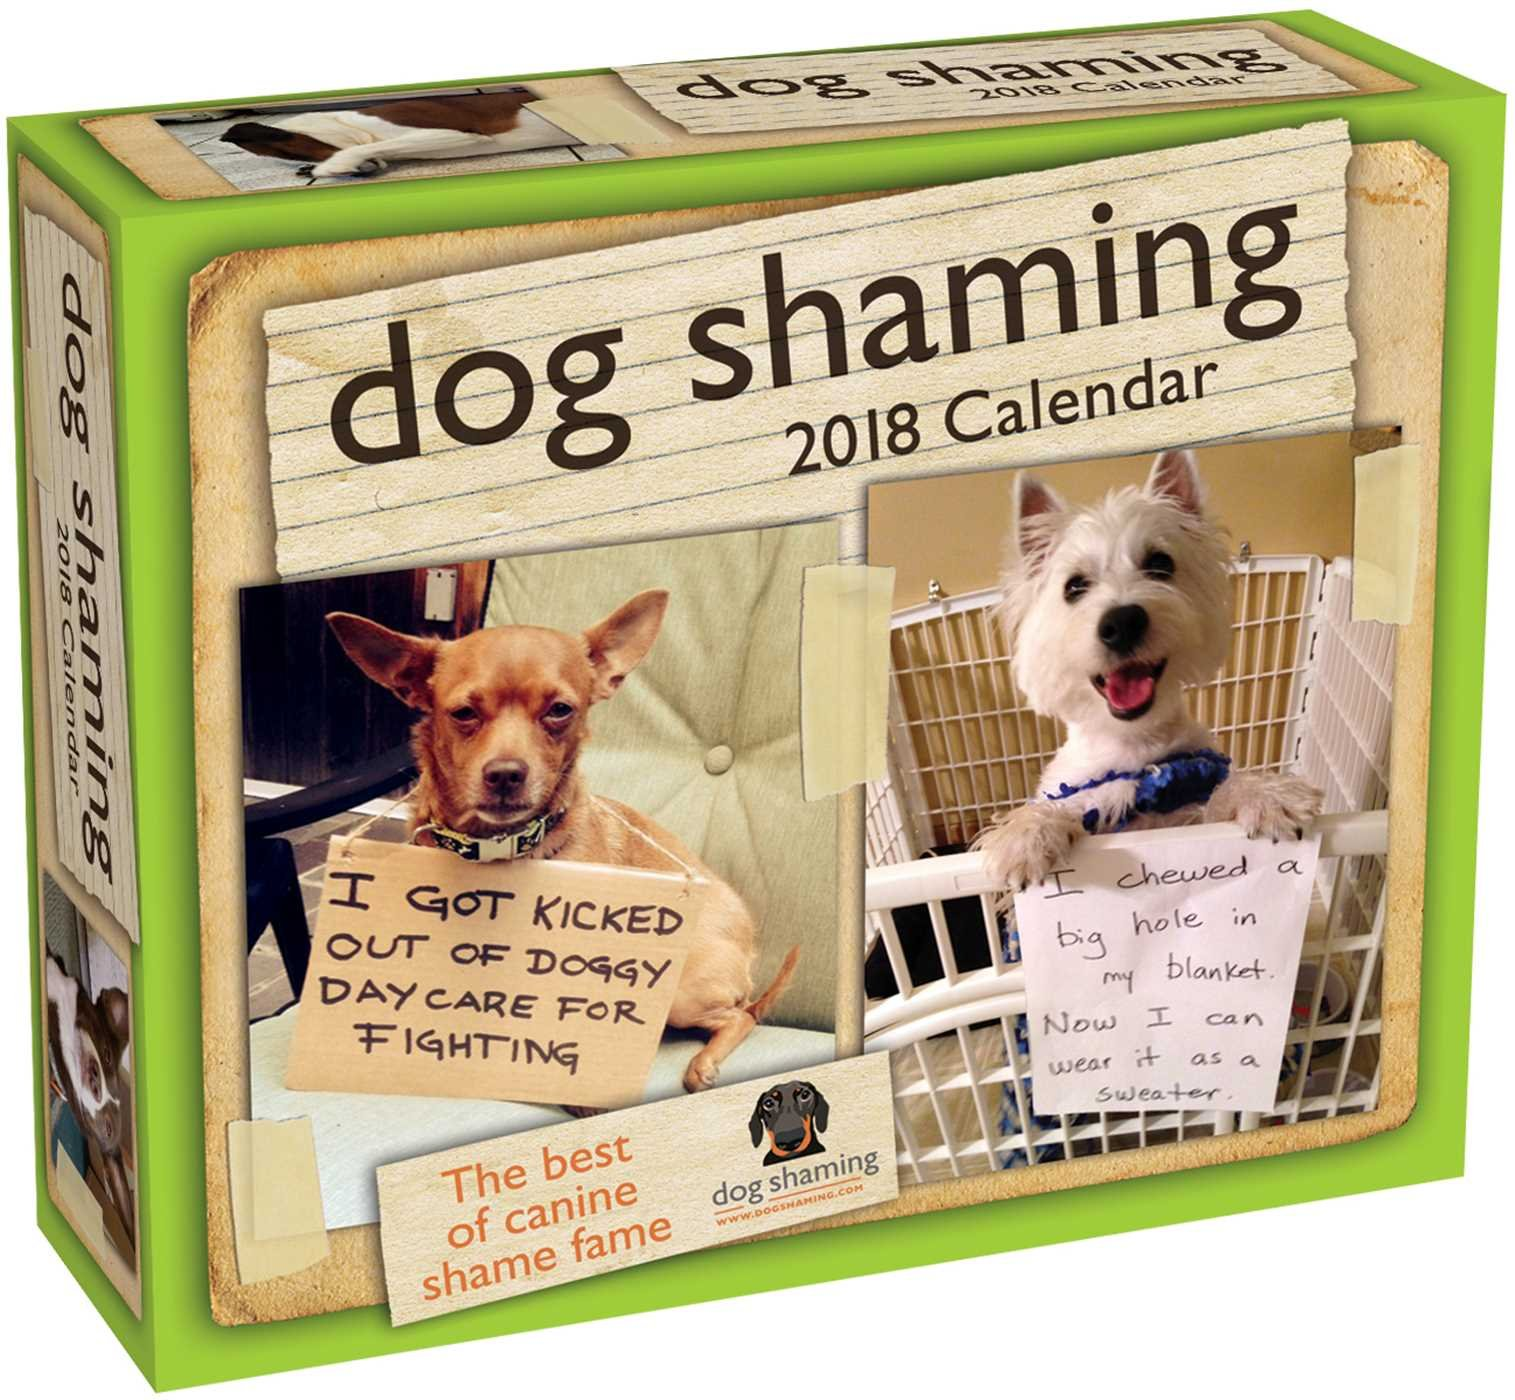 Dog Shaming 2018 Day-to-Day Calendar Calendar – Day to Day Calendar, Desk Calendar Pascale Lemire dogshaming.com Andrews McMeel Publishing 1449485154